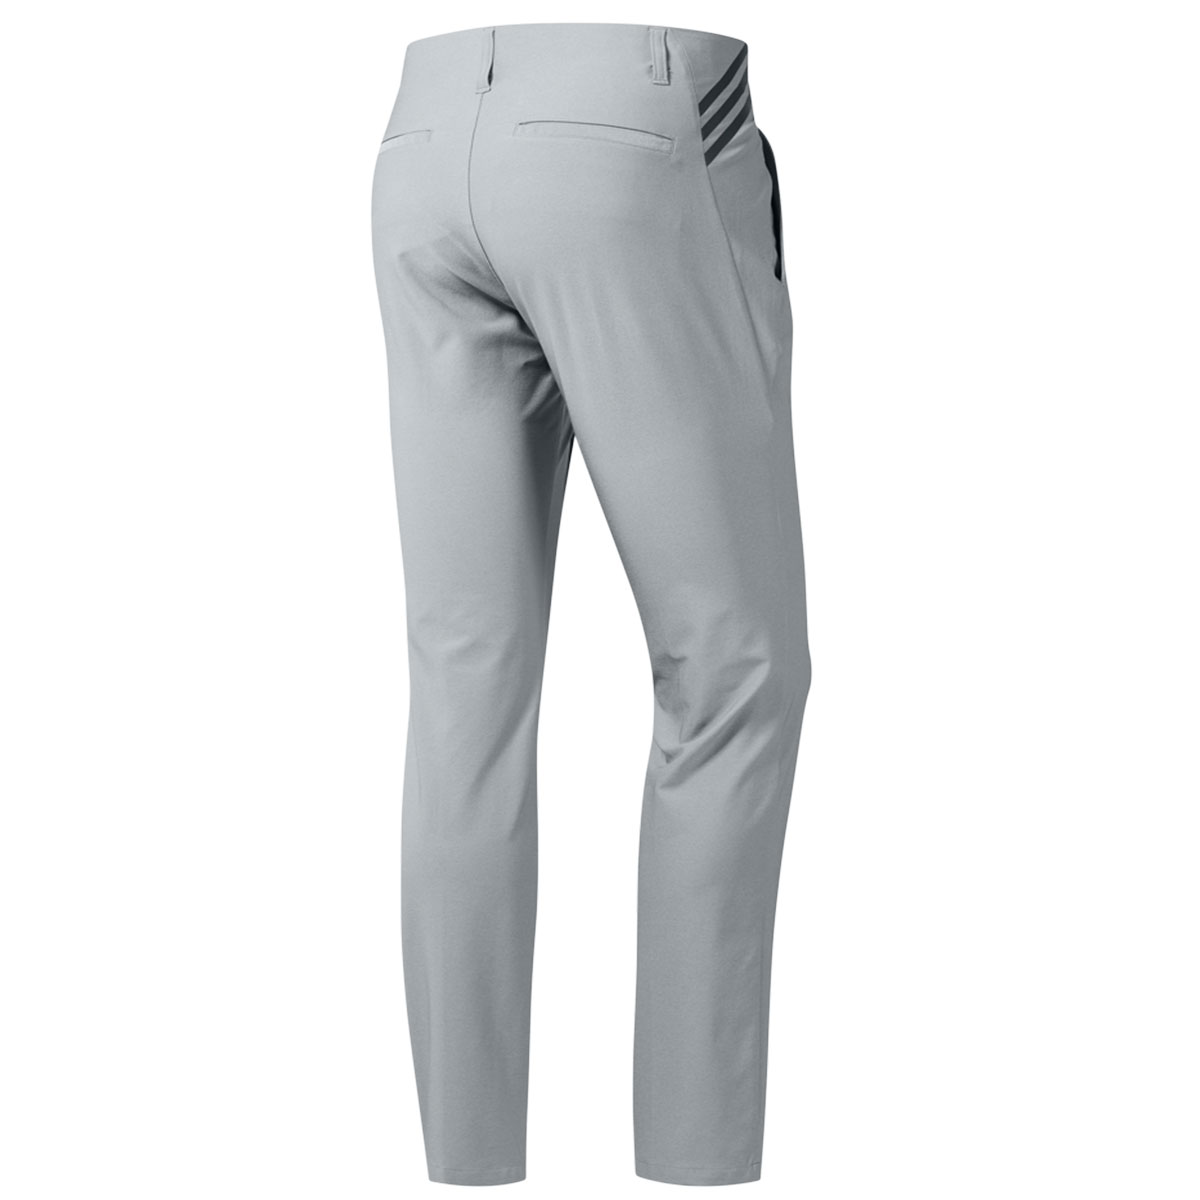 adidas-Golf-Mens-2019-Ultimate365-3-Stripes-Tapered-Water-Resistant-Trousers thumbnail 7